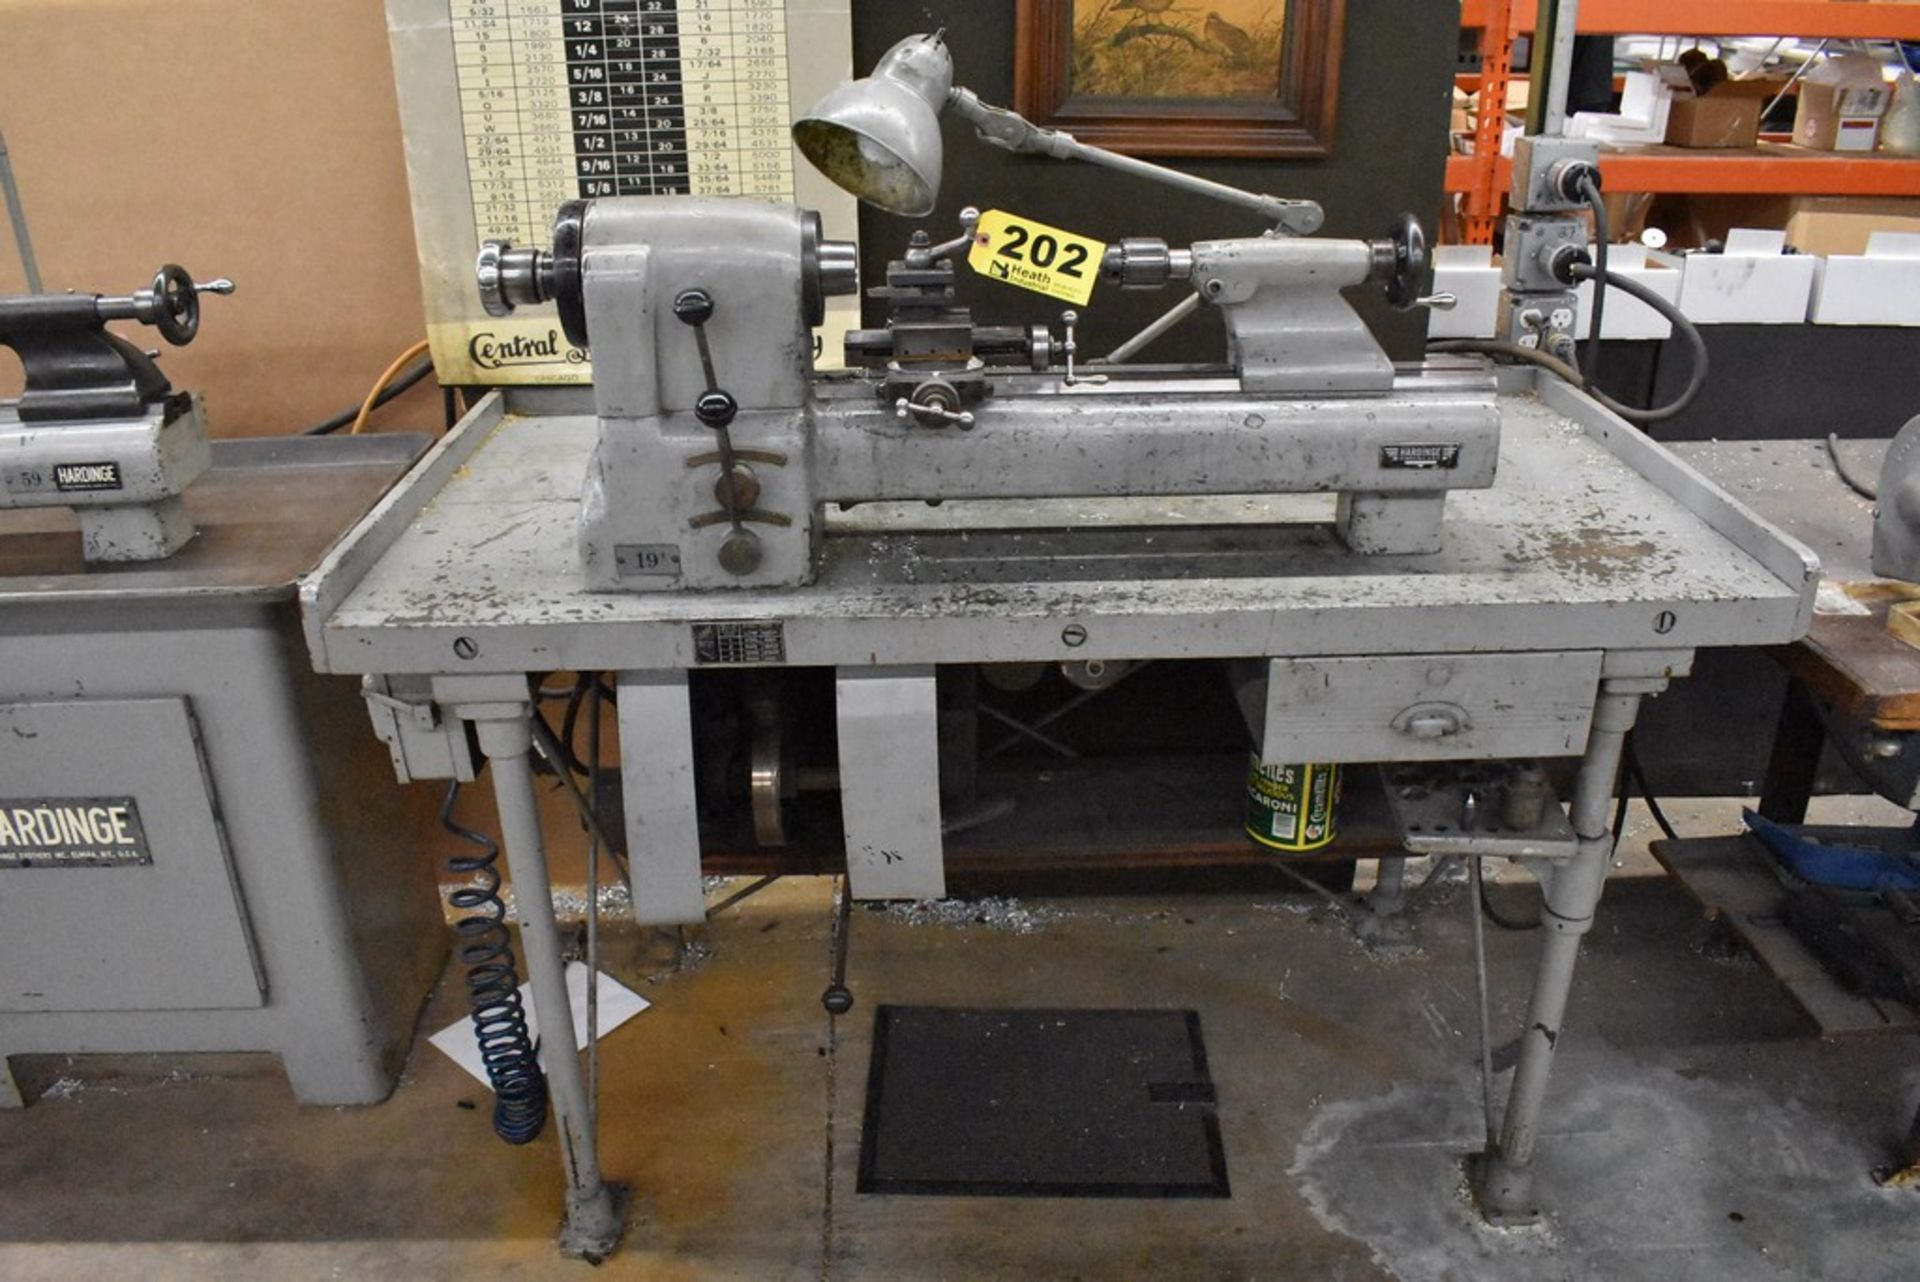 HARDINGE NO. 59 PRECISION SPLIT BED LATHE, S/N 59-16741, WITH SWIVEL COMPOUND, MOUNTED ON TABLE - Image 5 of 7